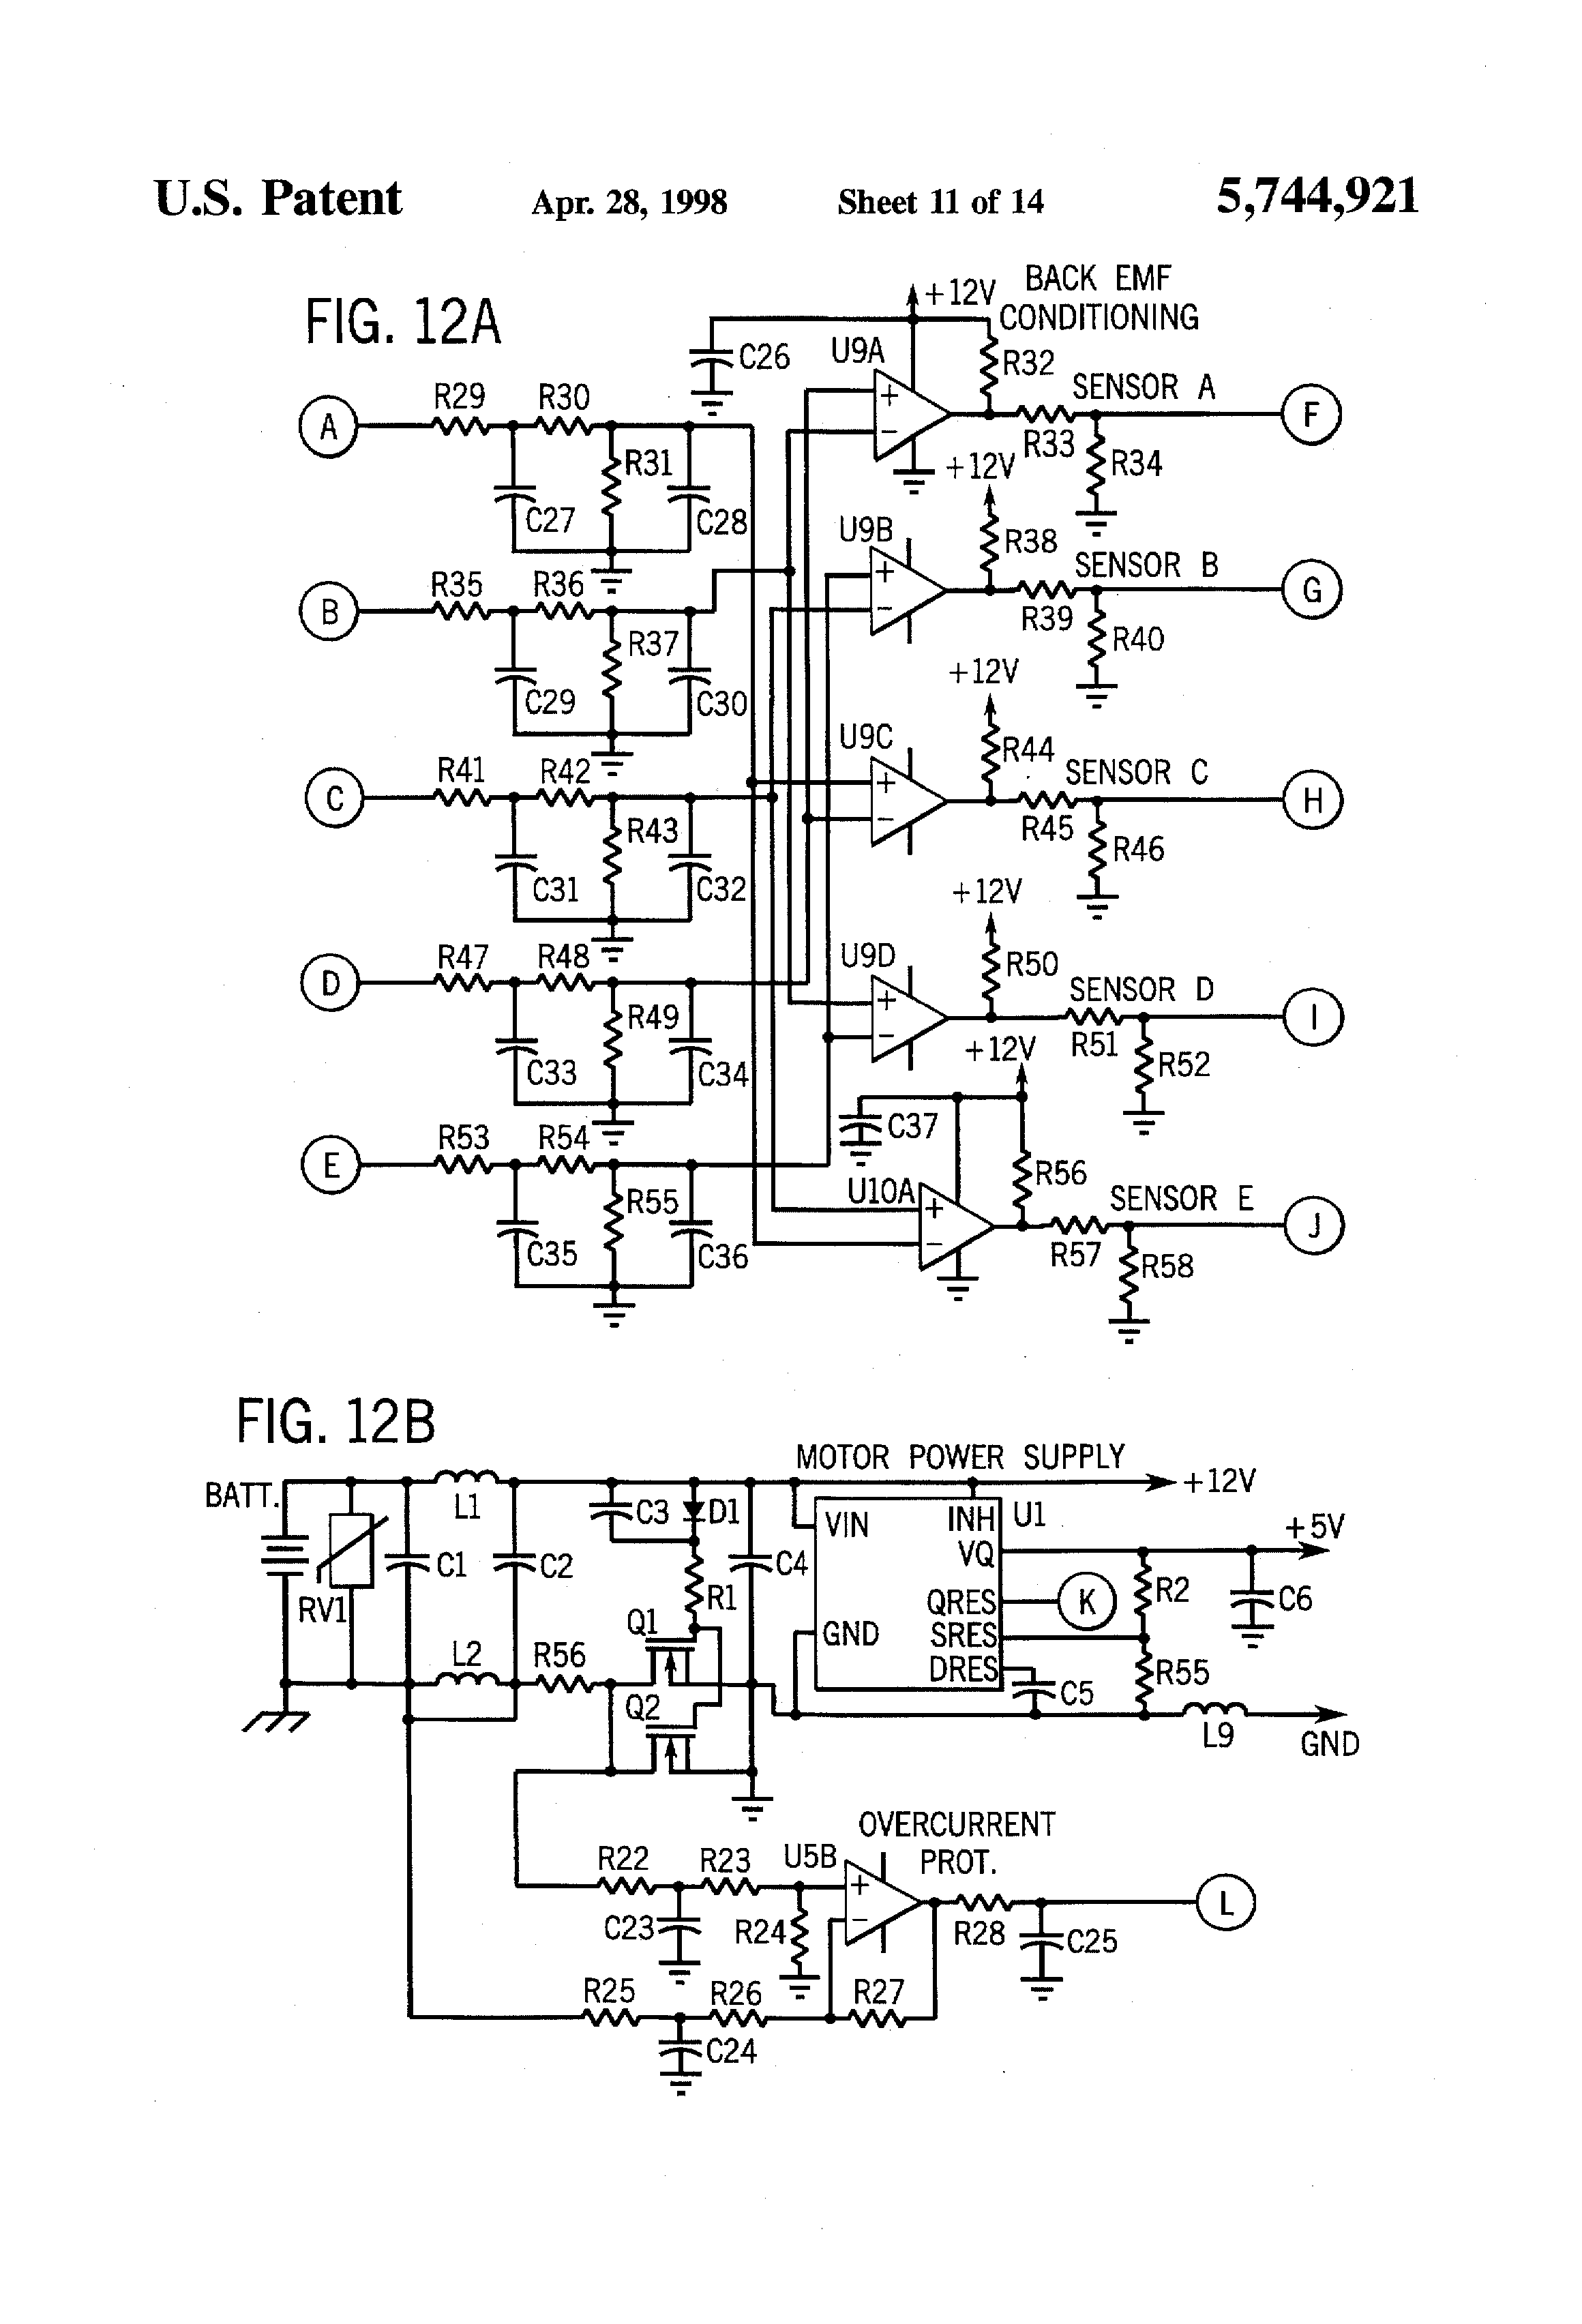 Suppression Circuit For Overcoupling Of 24 V Control Signals furthermore Ward Leonard Method Of Speed Control in addition Pmsm furthermore Closed Loop Brushless Motor Adapter Using Mc33039 together with Motor Speed Regulator With Triac. on brushless dc motor controller